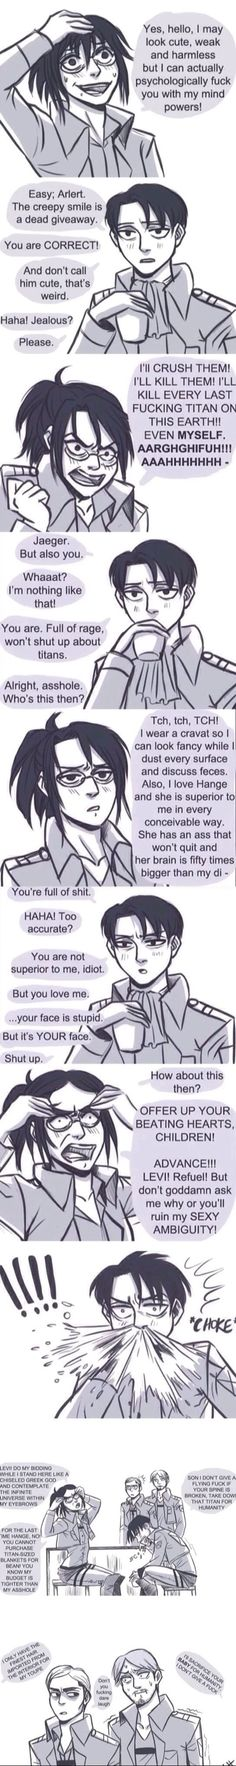 Attack on Titan: Hange doing impressions of Armin, Eren, Levi and Erwin. This board = hilarious